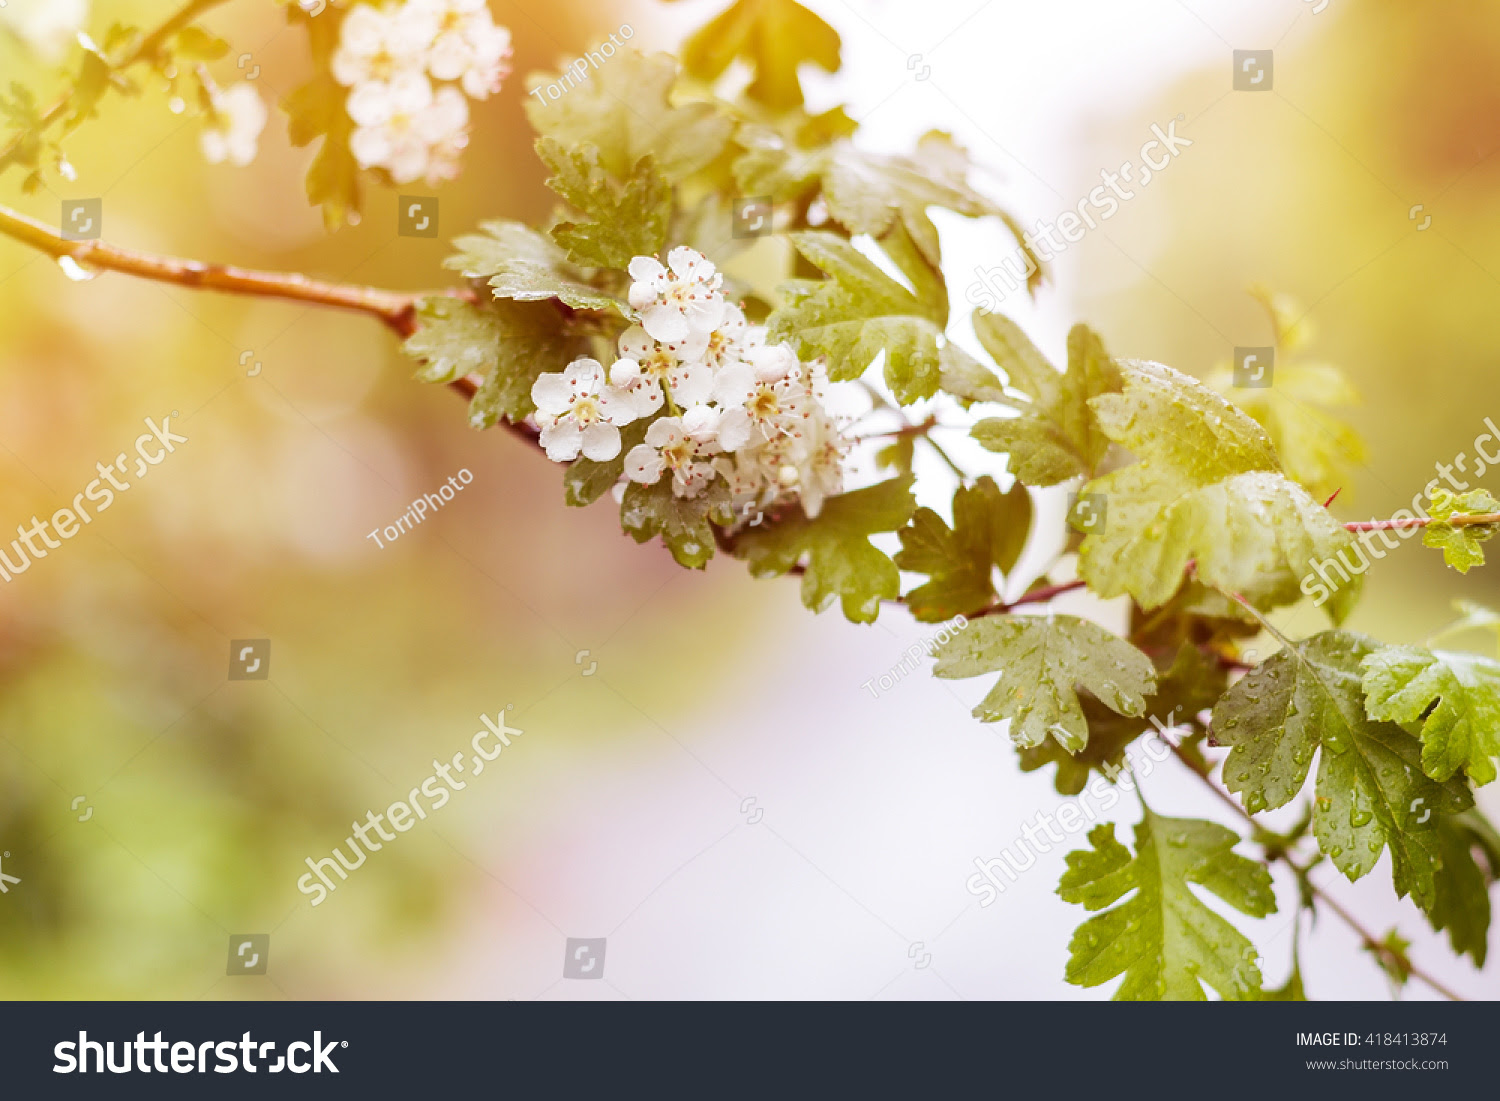 abstract, april, backdrop, background, beautiful, beauty, bird, bloom, blooming, blossom, blossoming, blur, branch, bud, cherry, closeup, copy, floral, flower, focus, fresh, freshness, gardening, green, may, natural, nature, petal, plant, shallow, sky, space, spring, sunlight, tree, white, yellow